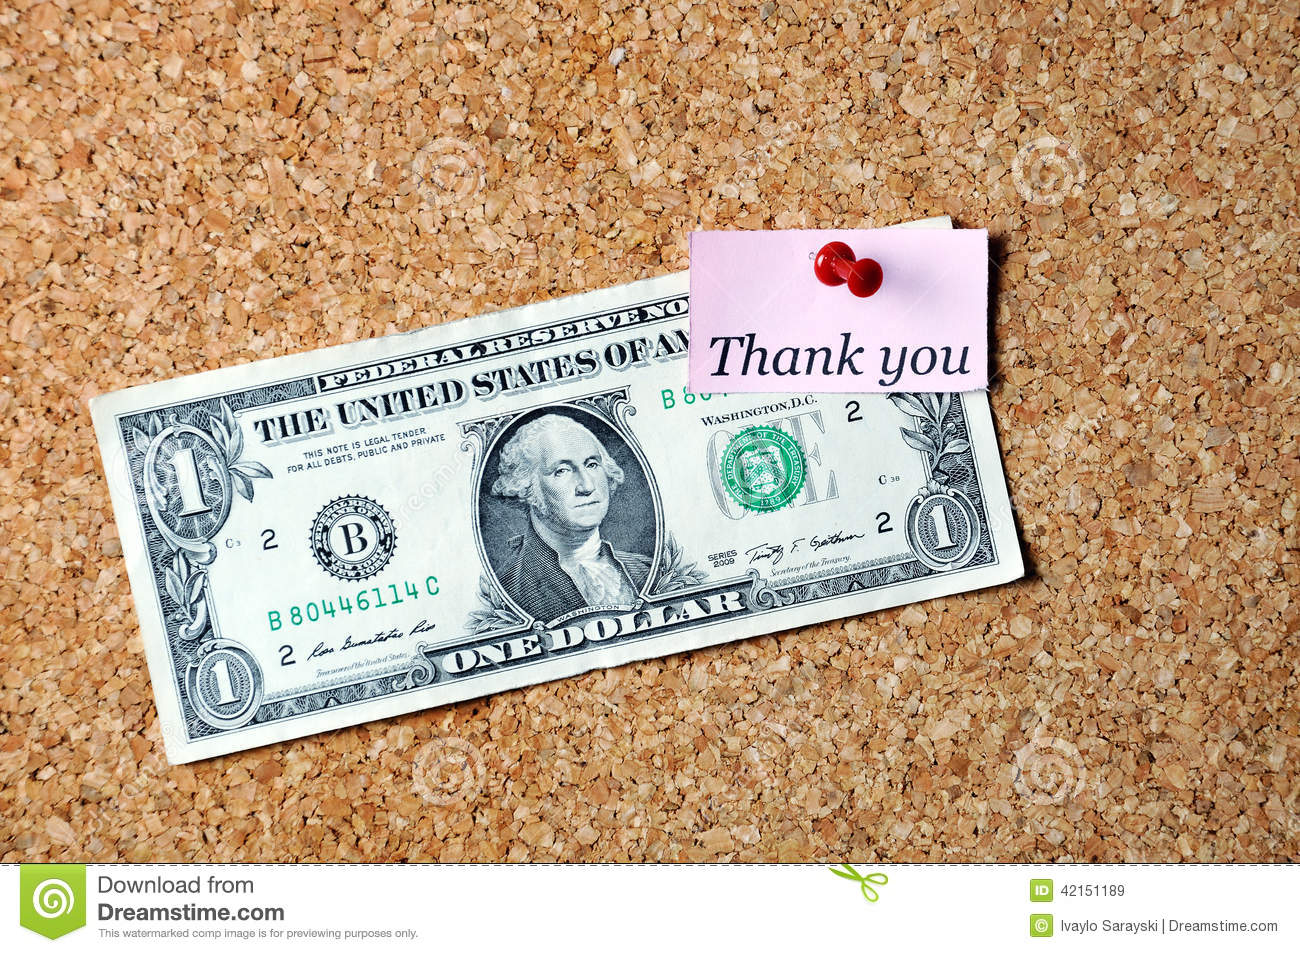 corkboard map with Stock Photo Thank You Dollar Memo Note Bill Affixed To Corkboard Image42151189 on 15 Fun Features For Family Rooms further 32643829251 besides Stock Photos Pinboard Notes Image8015513 furthermore Royalty Free Stock Photo Tower Money Packs Image23120215 besides Thumbtack.